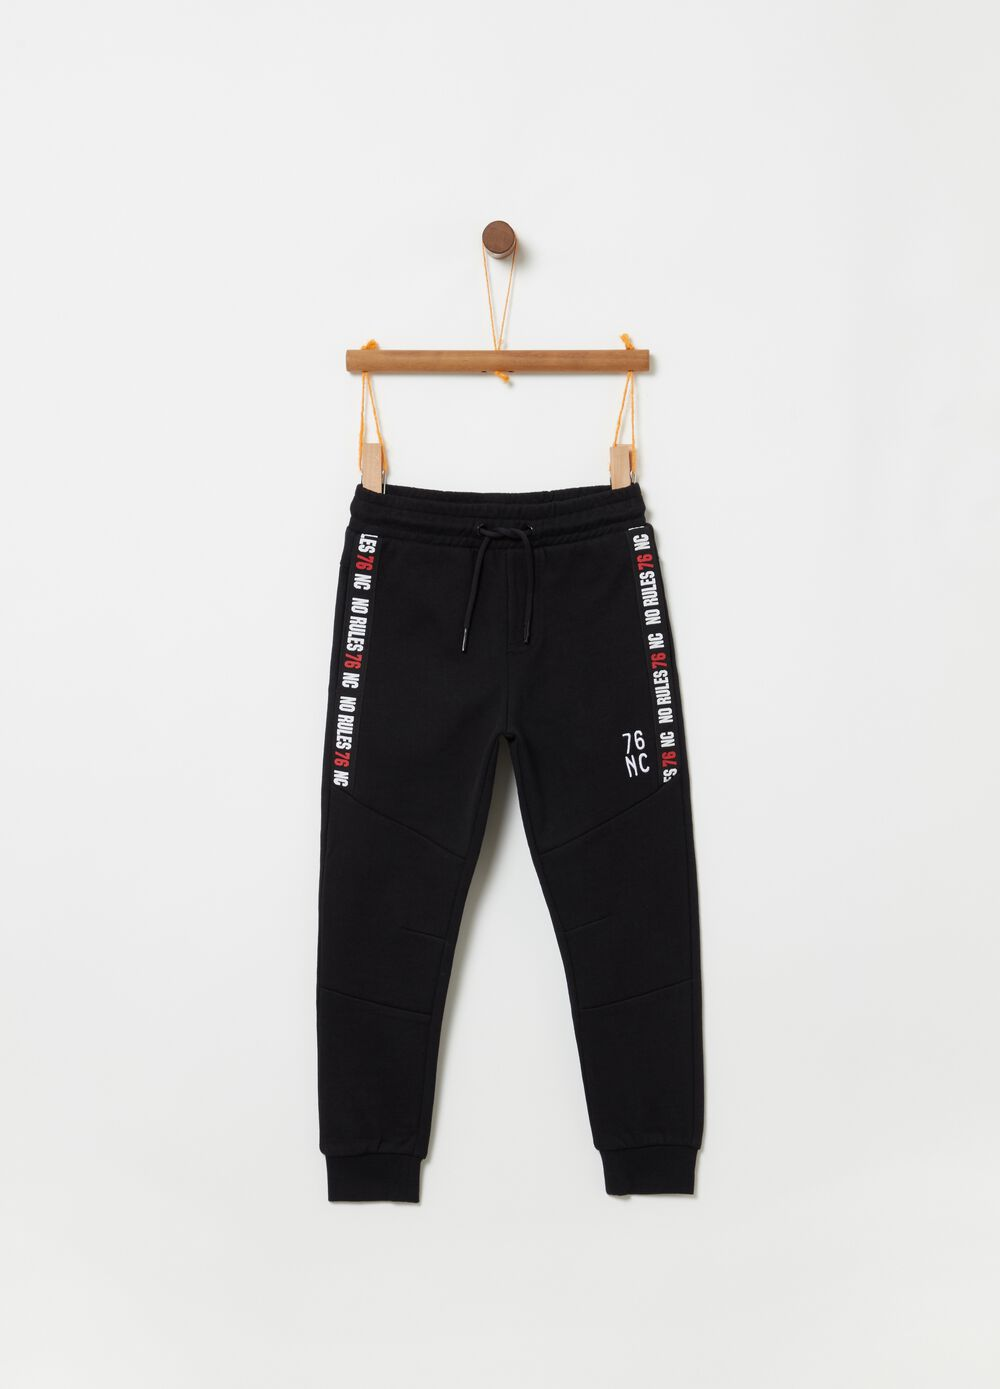 French terry trousers with drawstring and print